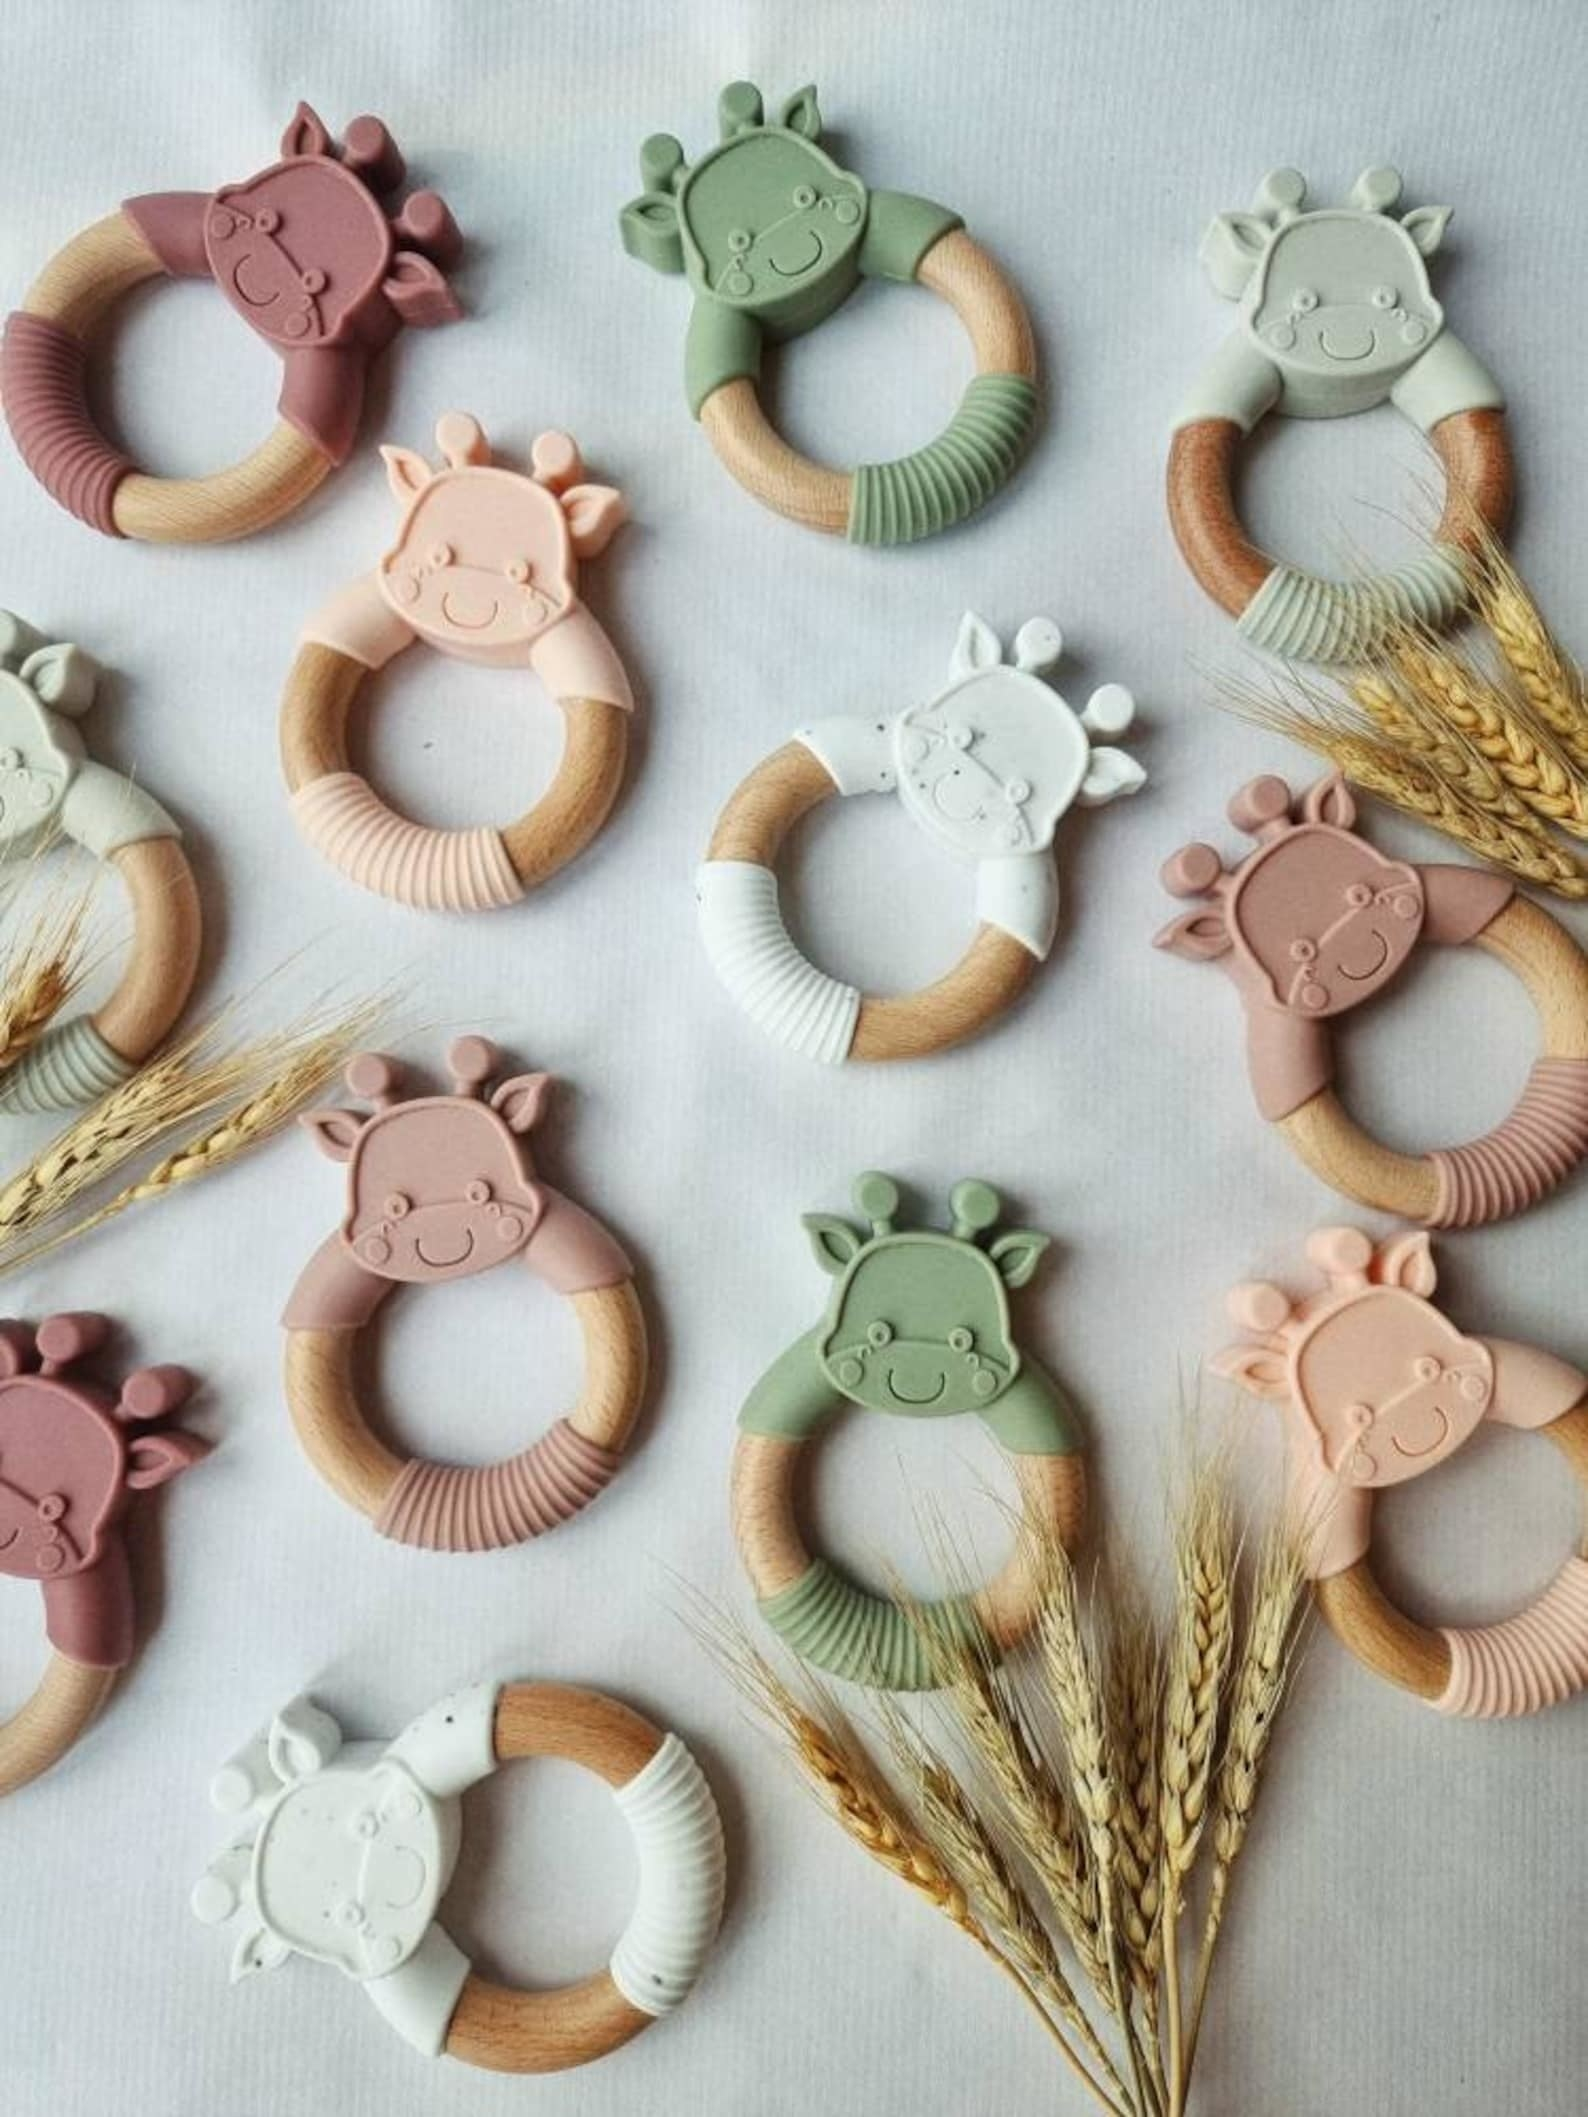 The silicone and wood giraffe teething rings in pastel colors